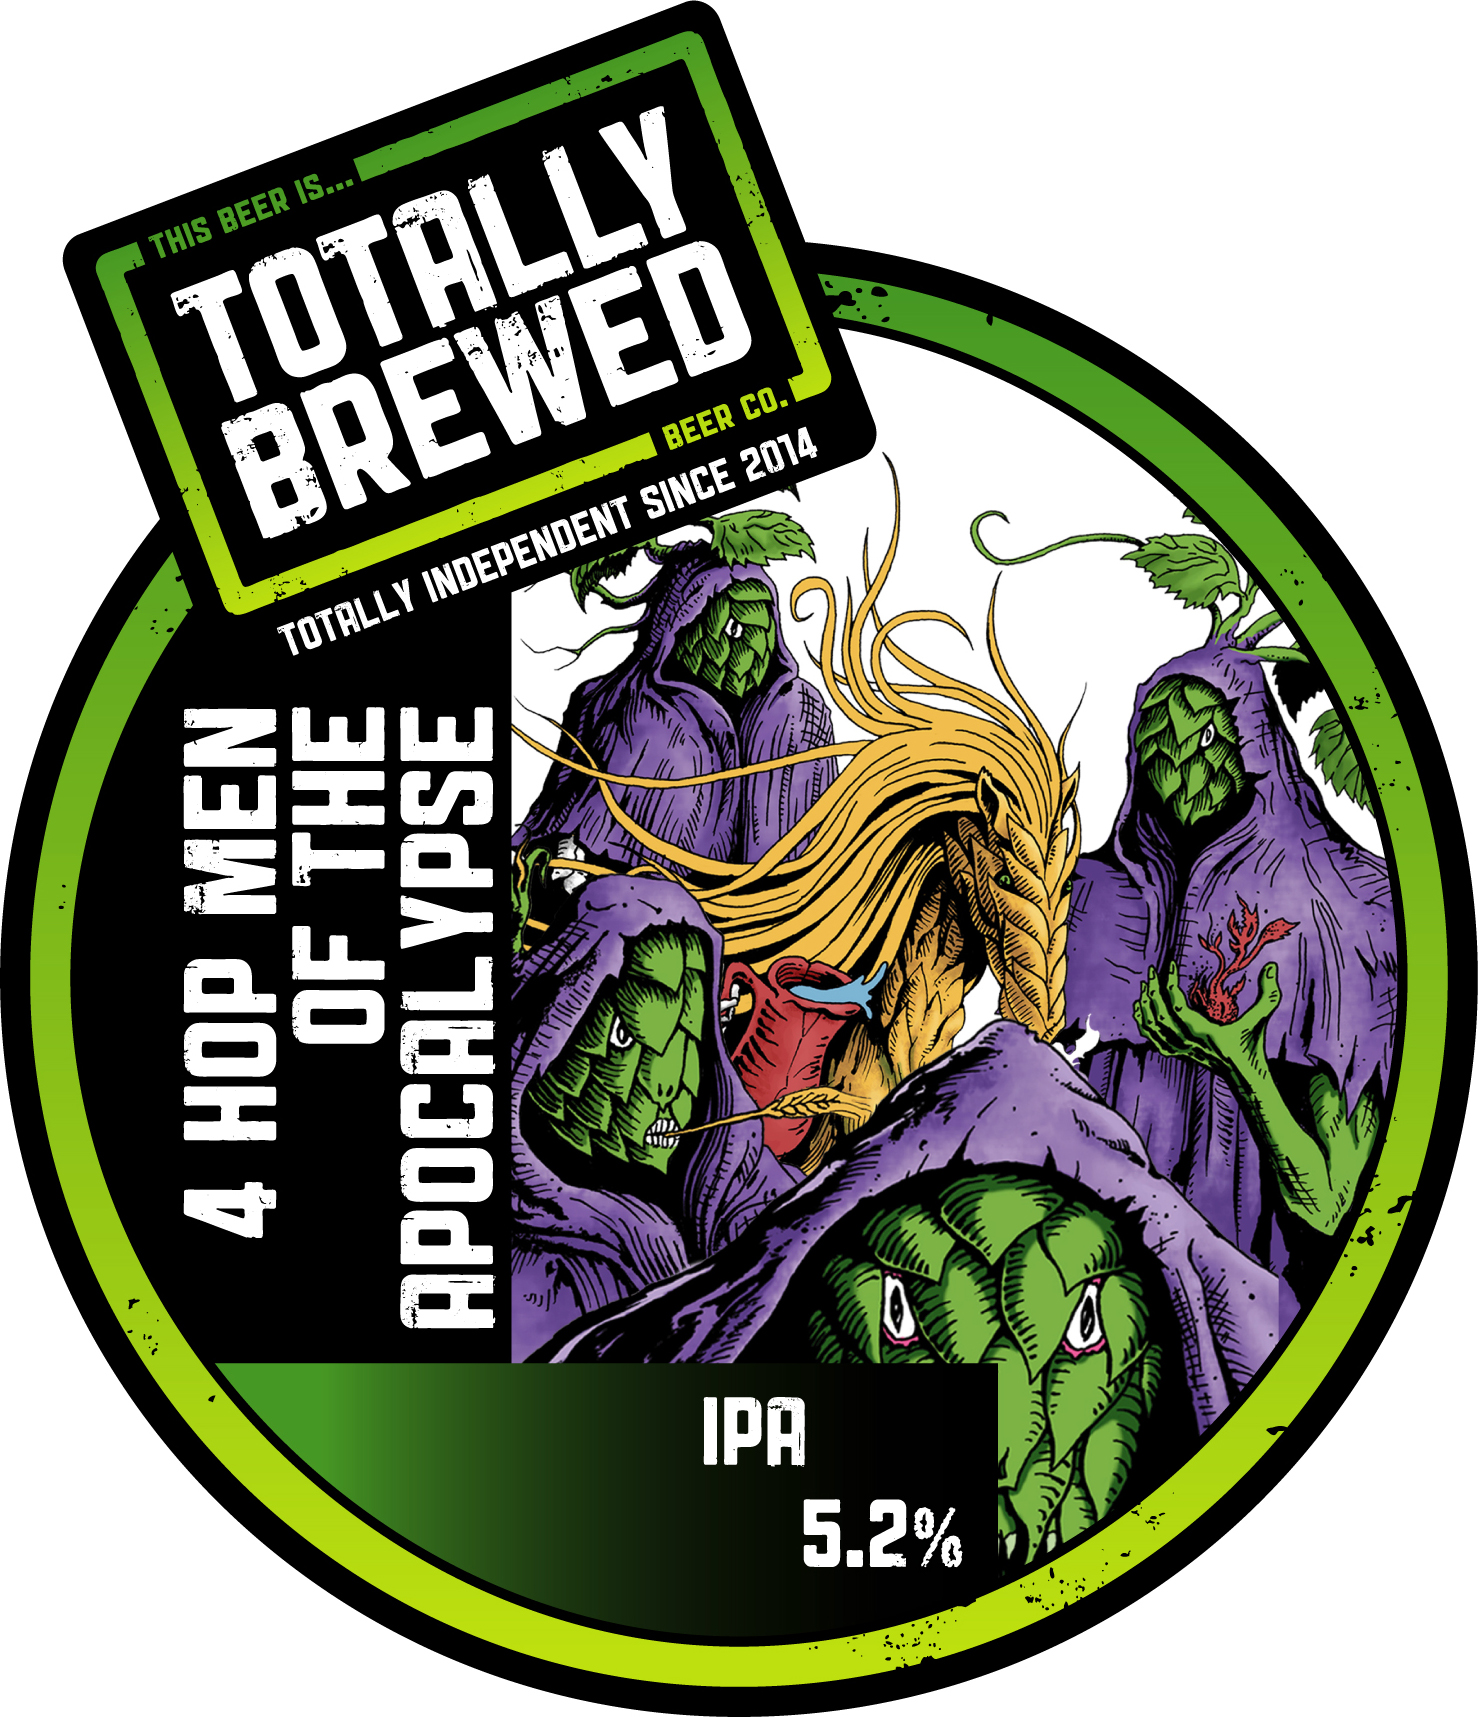 Totally Brewed 4 Hopmen of the Apocalypse 9 Gallons Pale5.2%